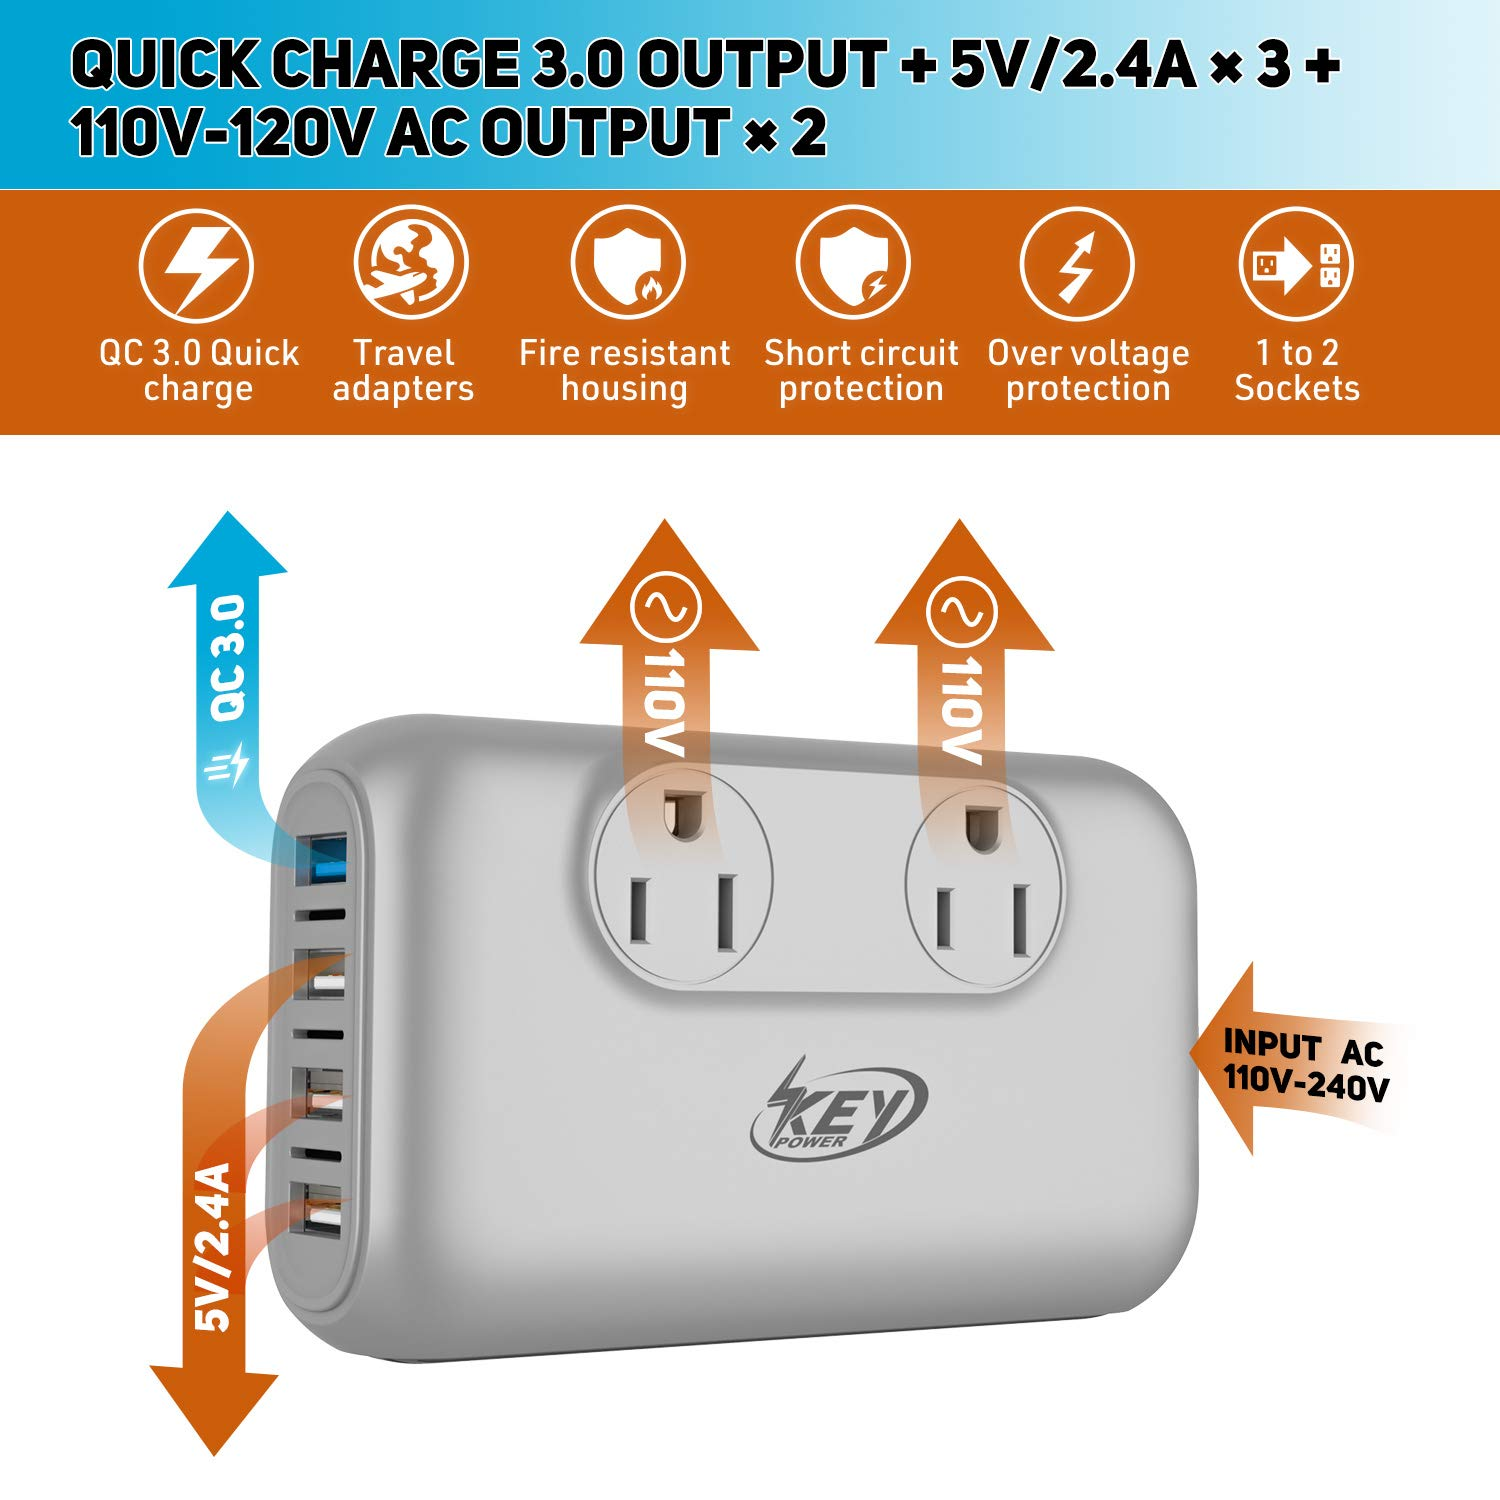 Key Power 220V to 110V Step Down Voltage Converter and International Travel Adapter, for CPAP, Hair Straightener Flat Iron, Hair Curling Iron, Toothbrush, Laptop - [Safely Use USA Electronic Overseas] by Key Power (Image #2)